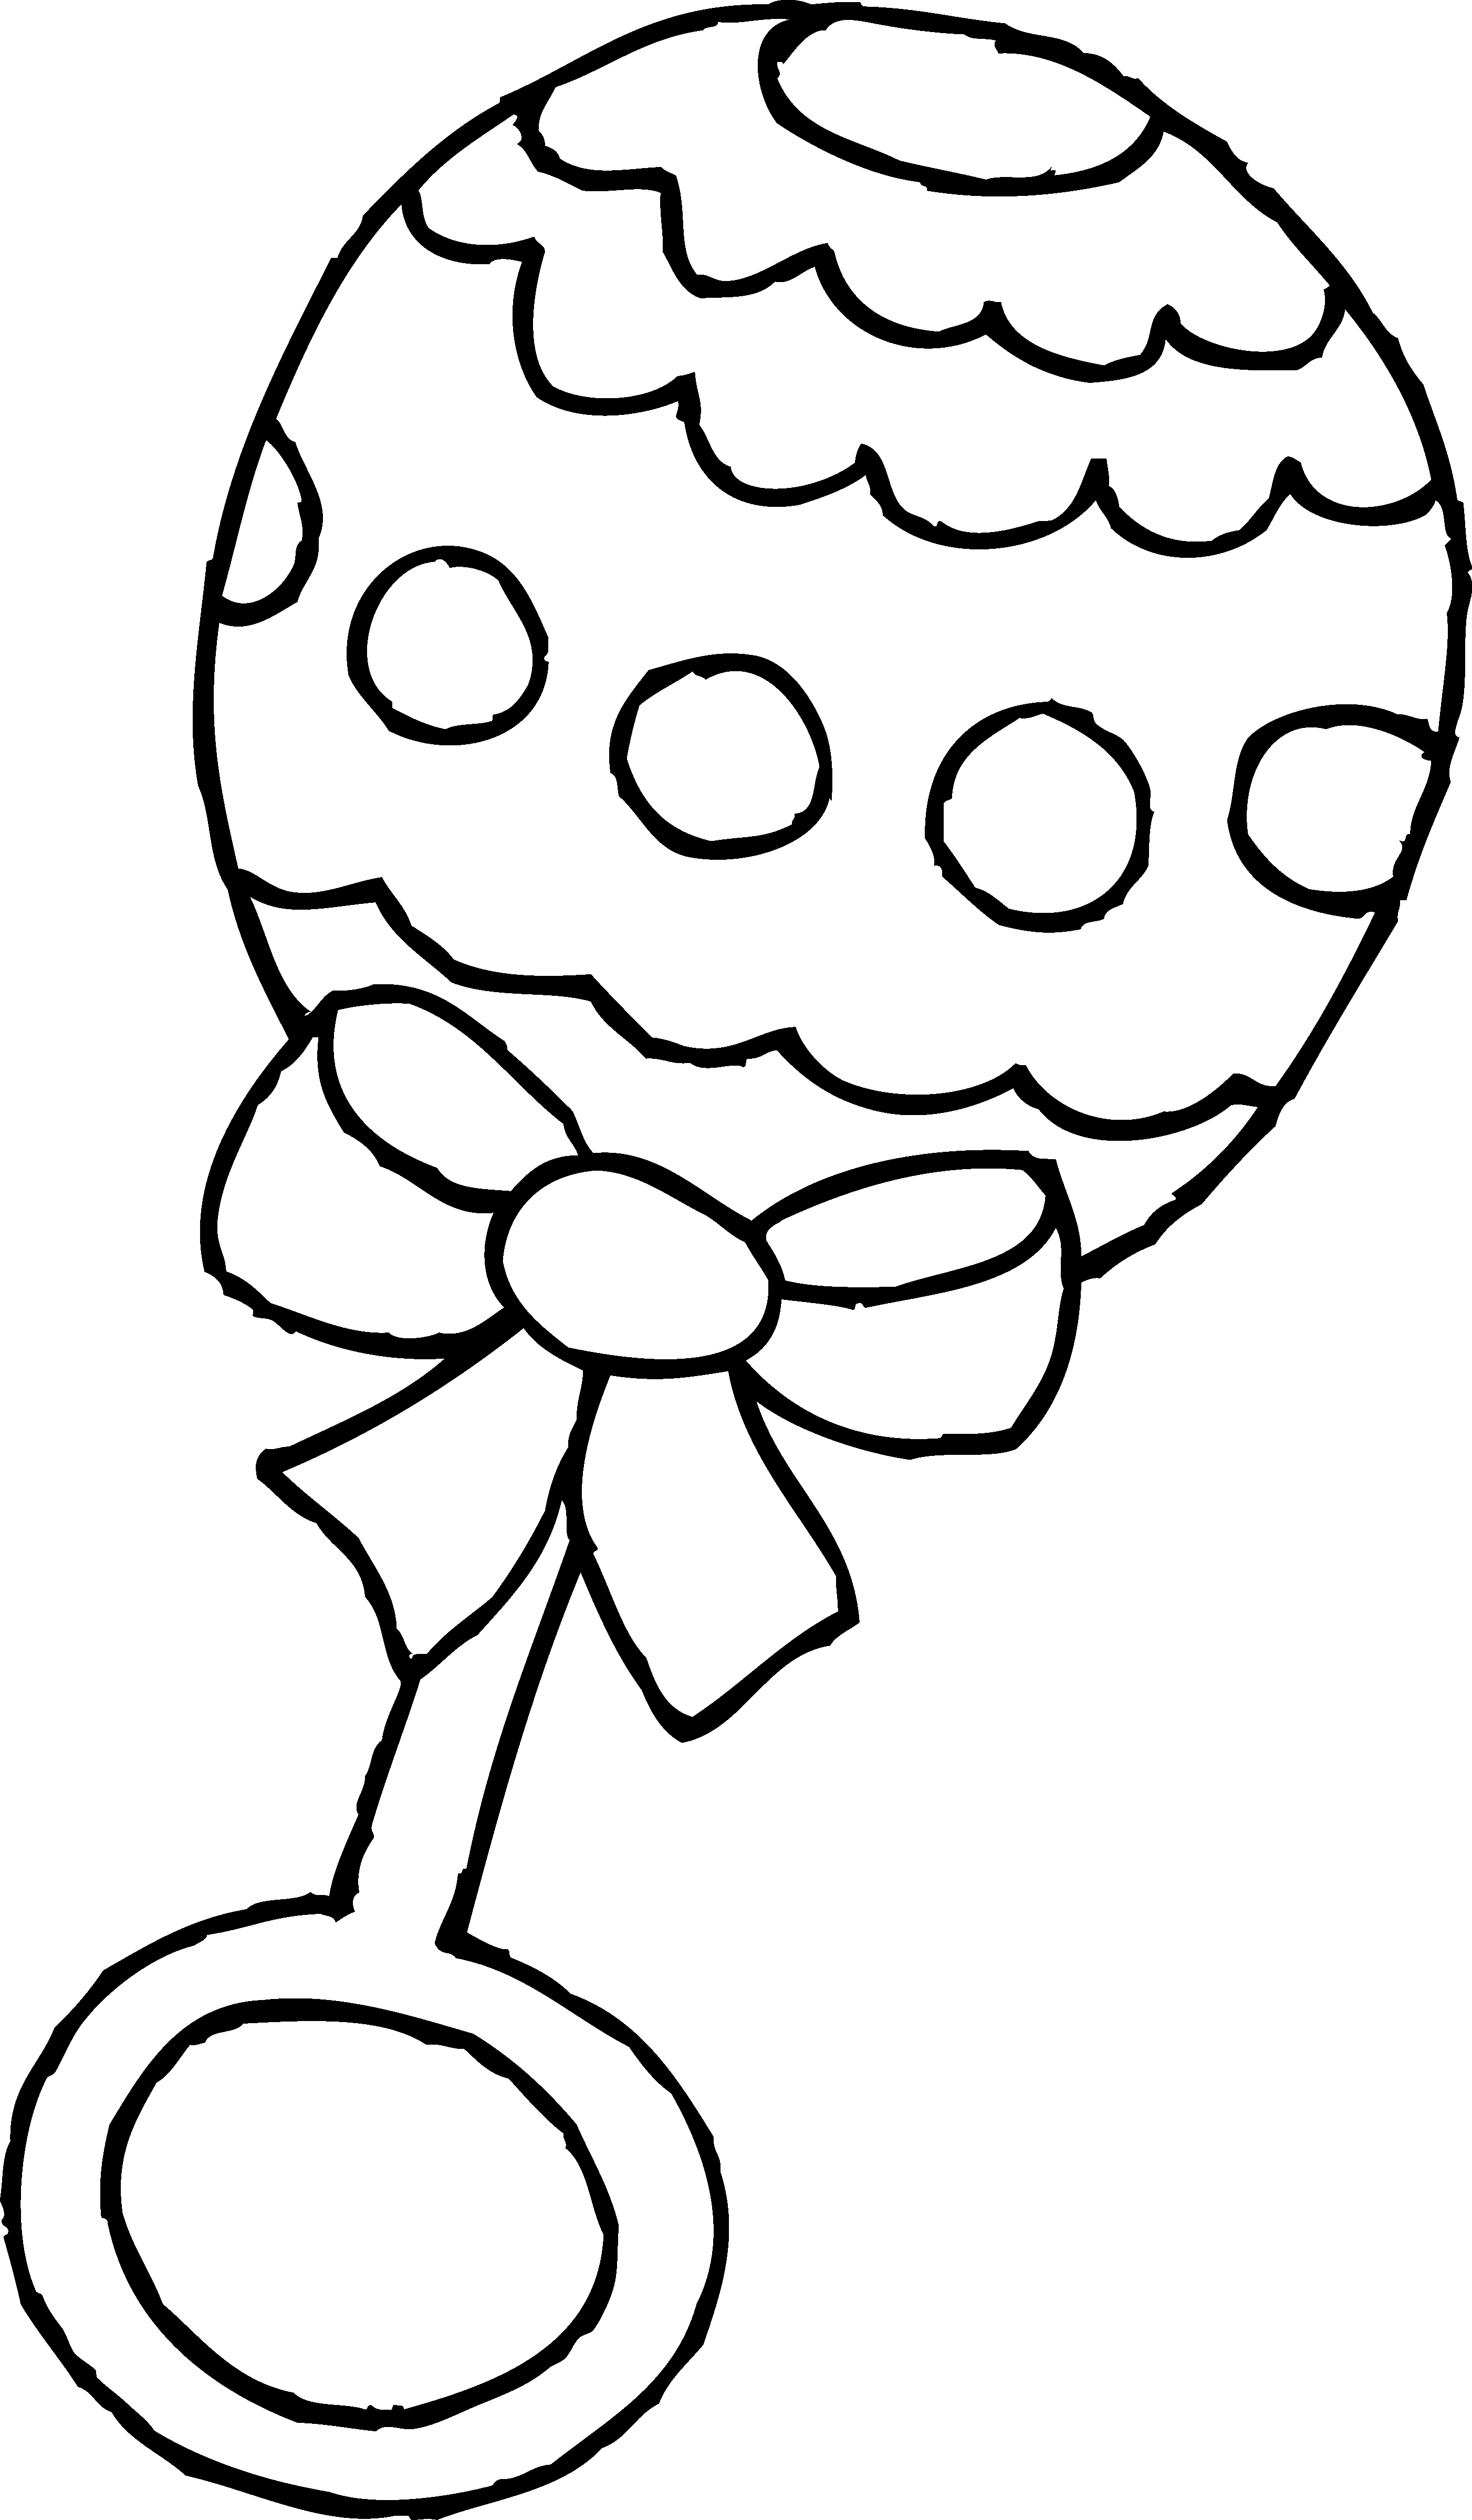 Wheel Clipart Black And White Baby Rattl-Wheel Clipart Black And White Baby Rattle Clip Art Black And White Png-16